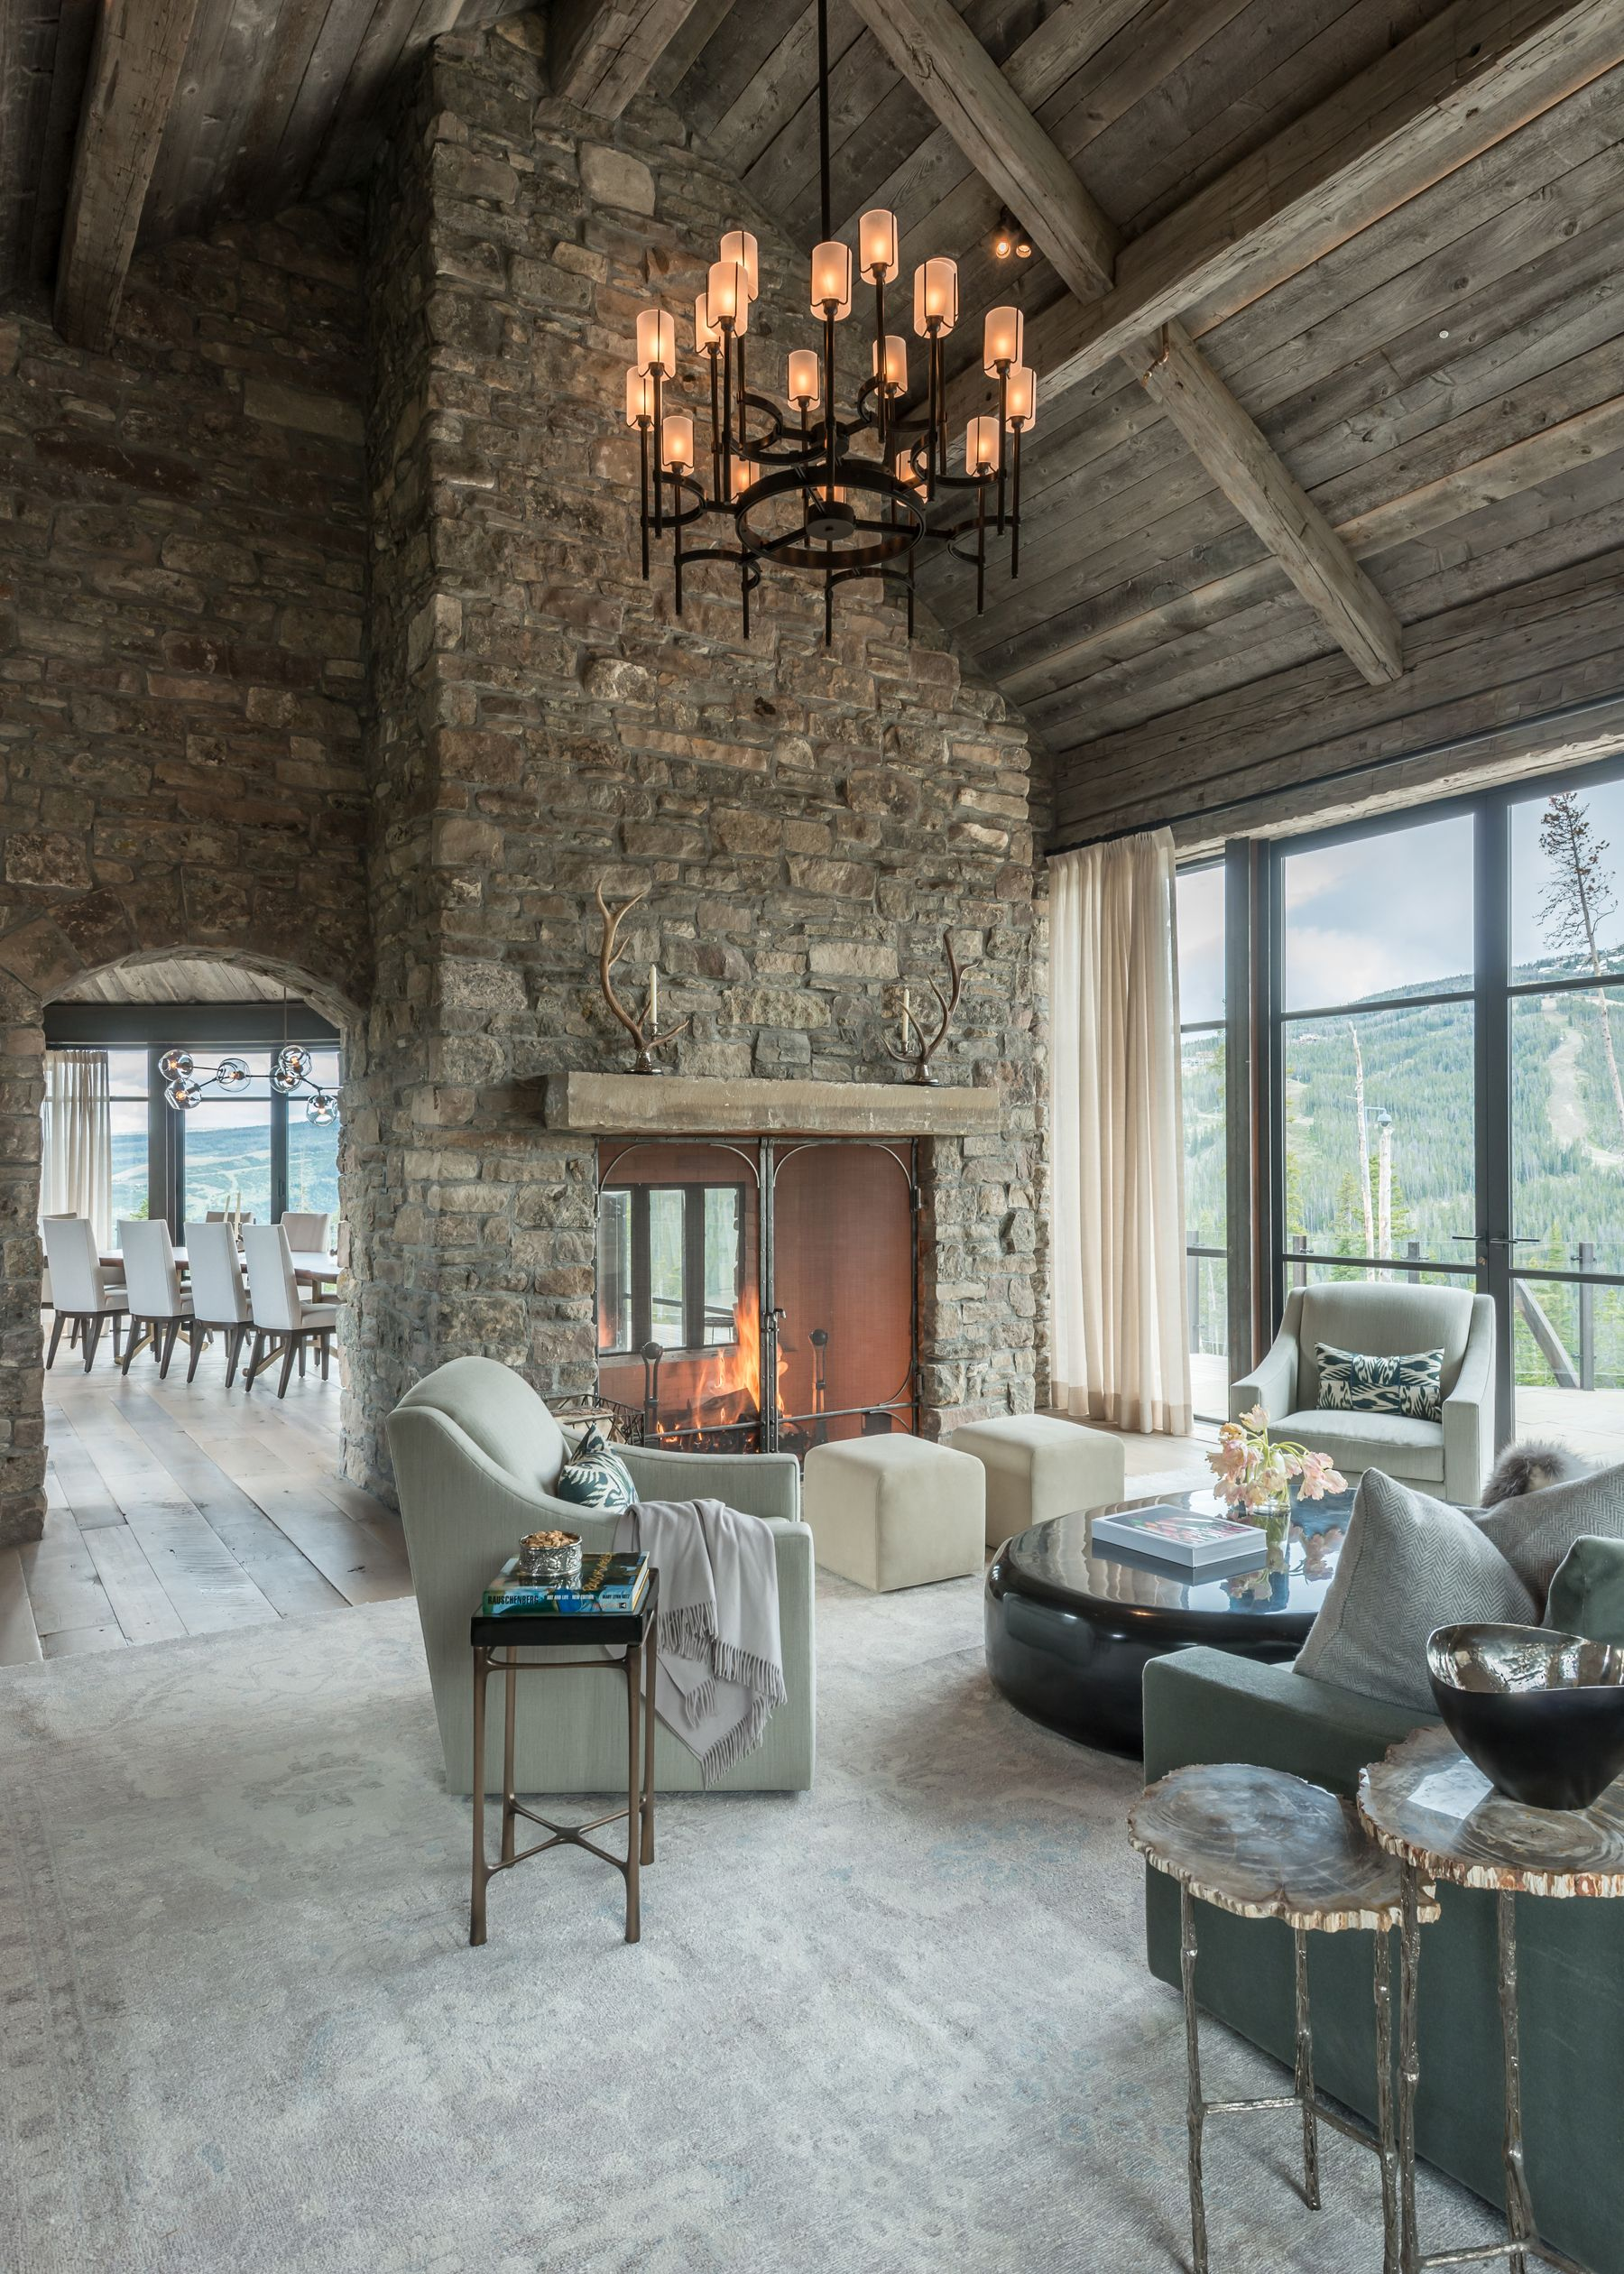 Living Room Open To Dining With Steel Windows And 2 Sided Fireplace Architecture Farm House Living Room Rustic Home Design